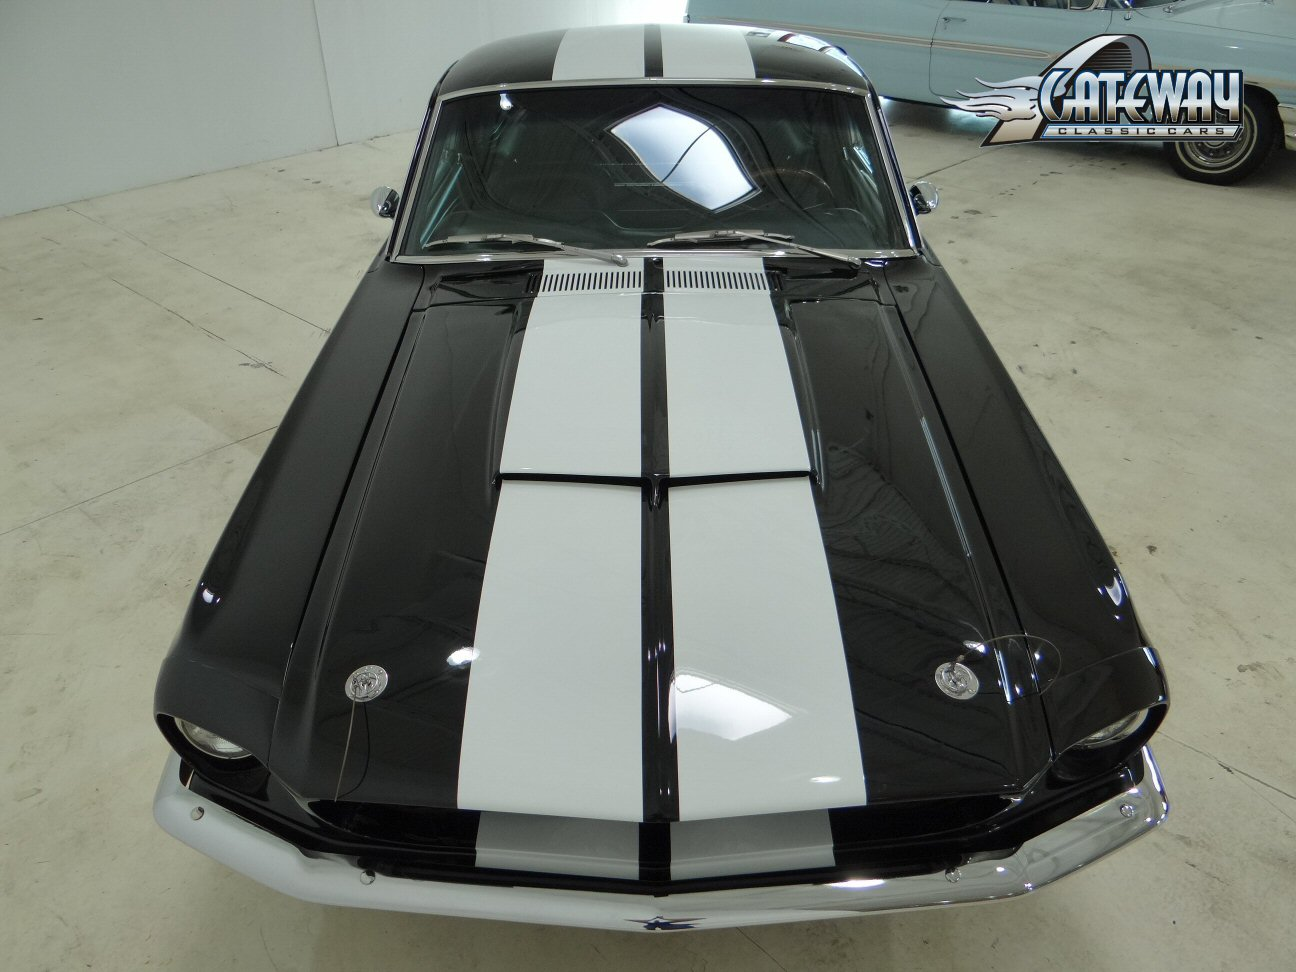 1967 Ford Mustang Shelby GT500 For Sale   Chicago, IL Gateway Classic